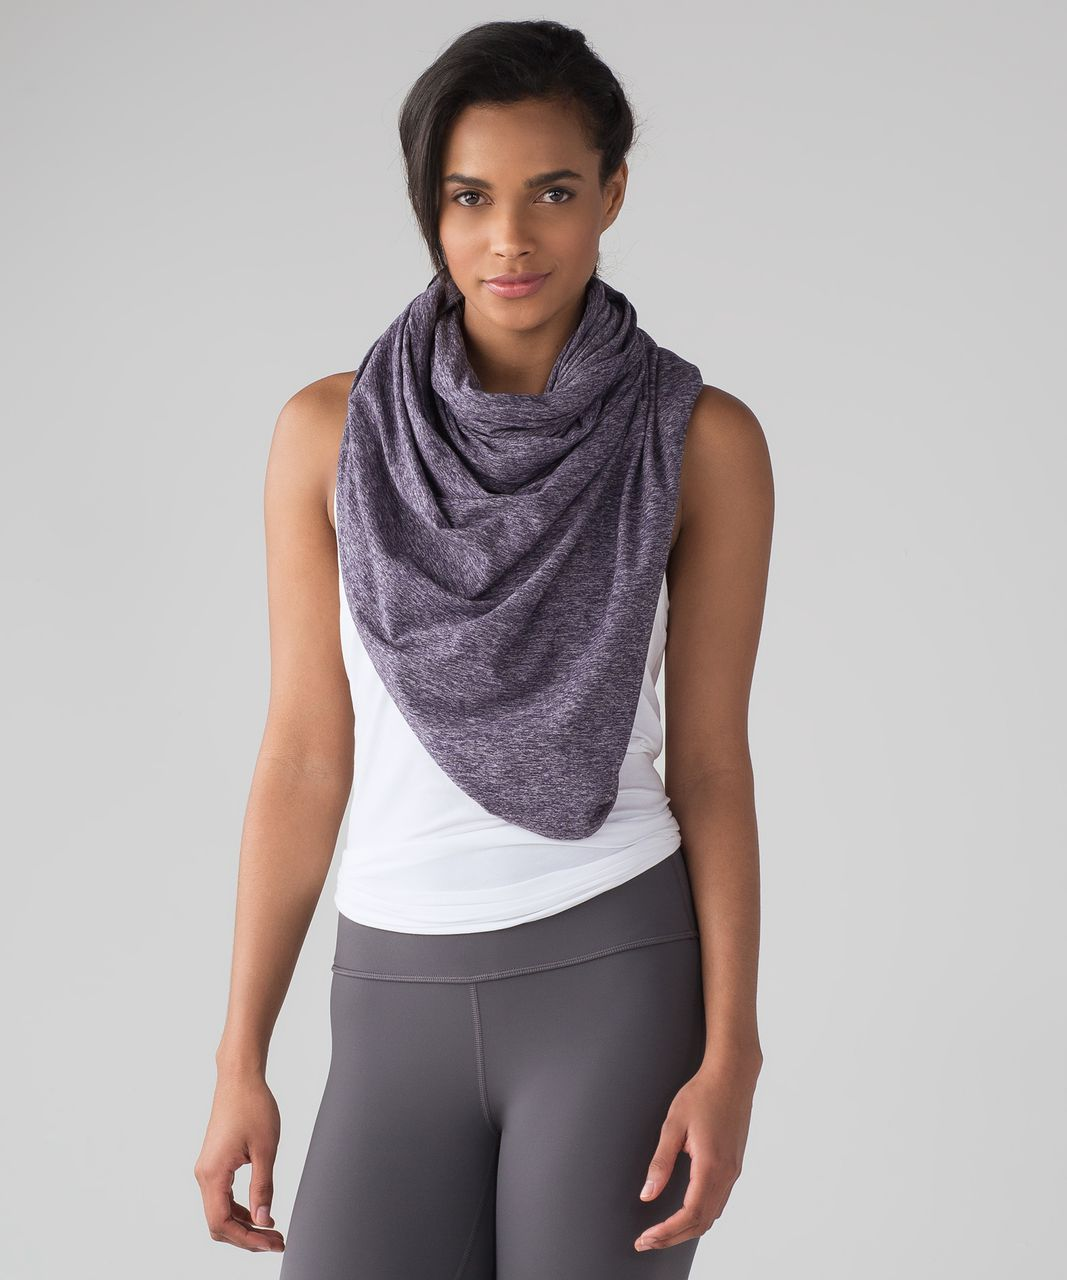 Lululemon Vinyasa Scarf (Rulu) - Heathered Black Grape